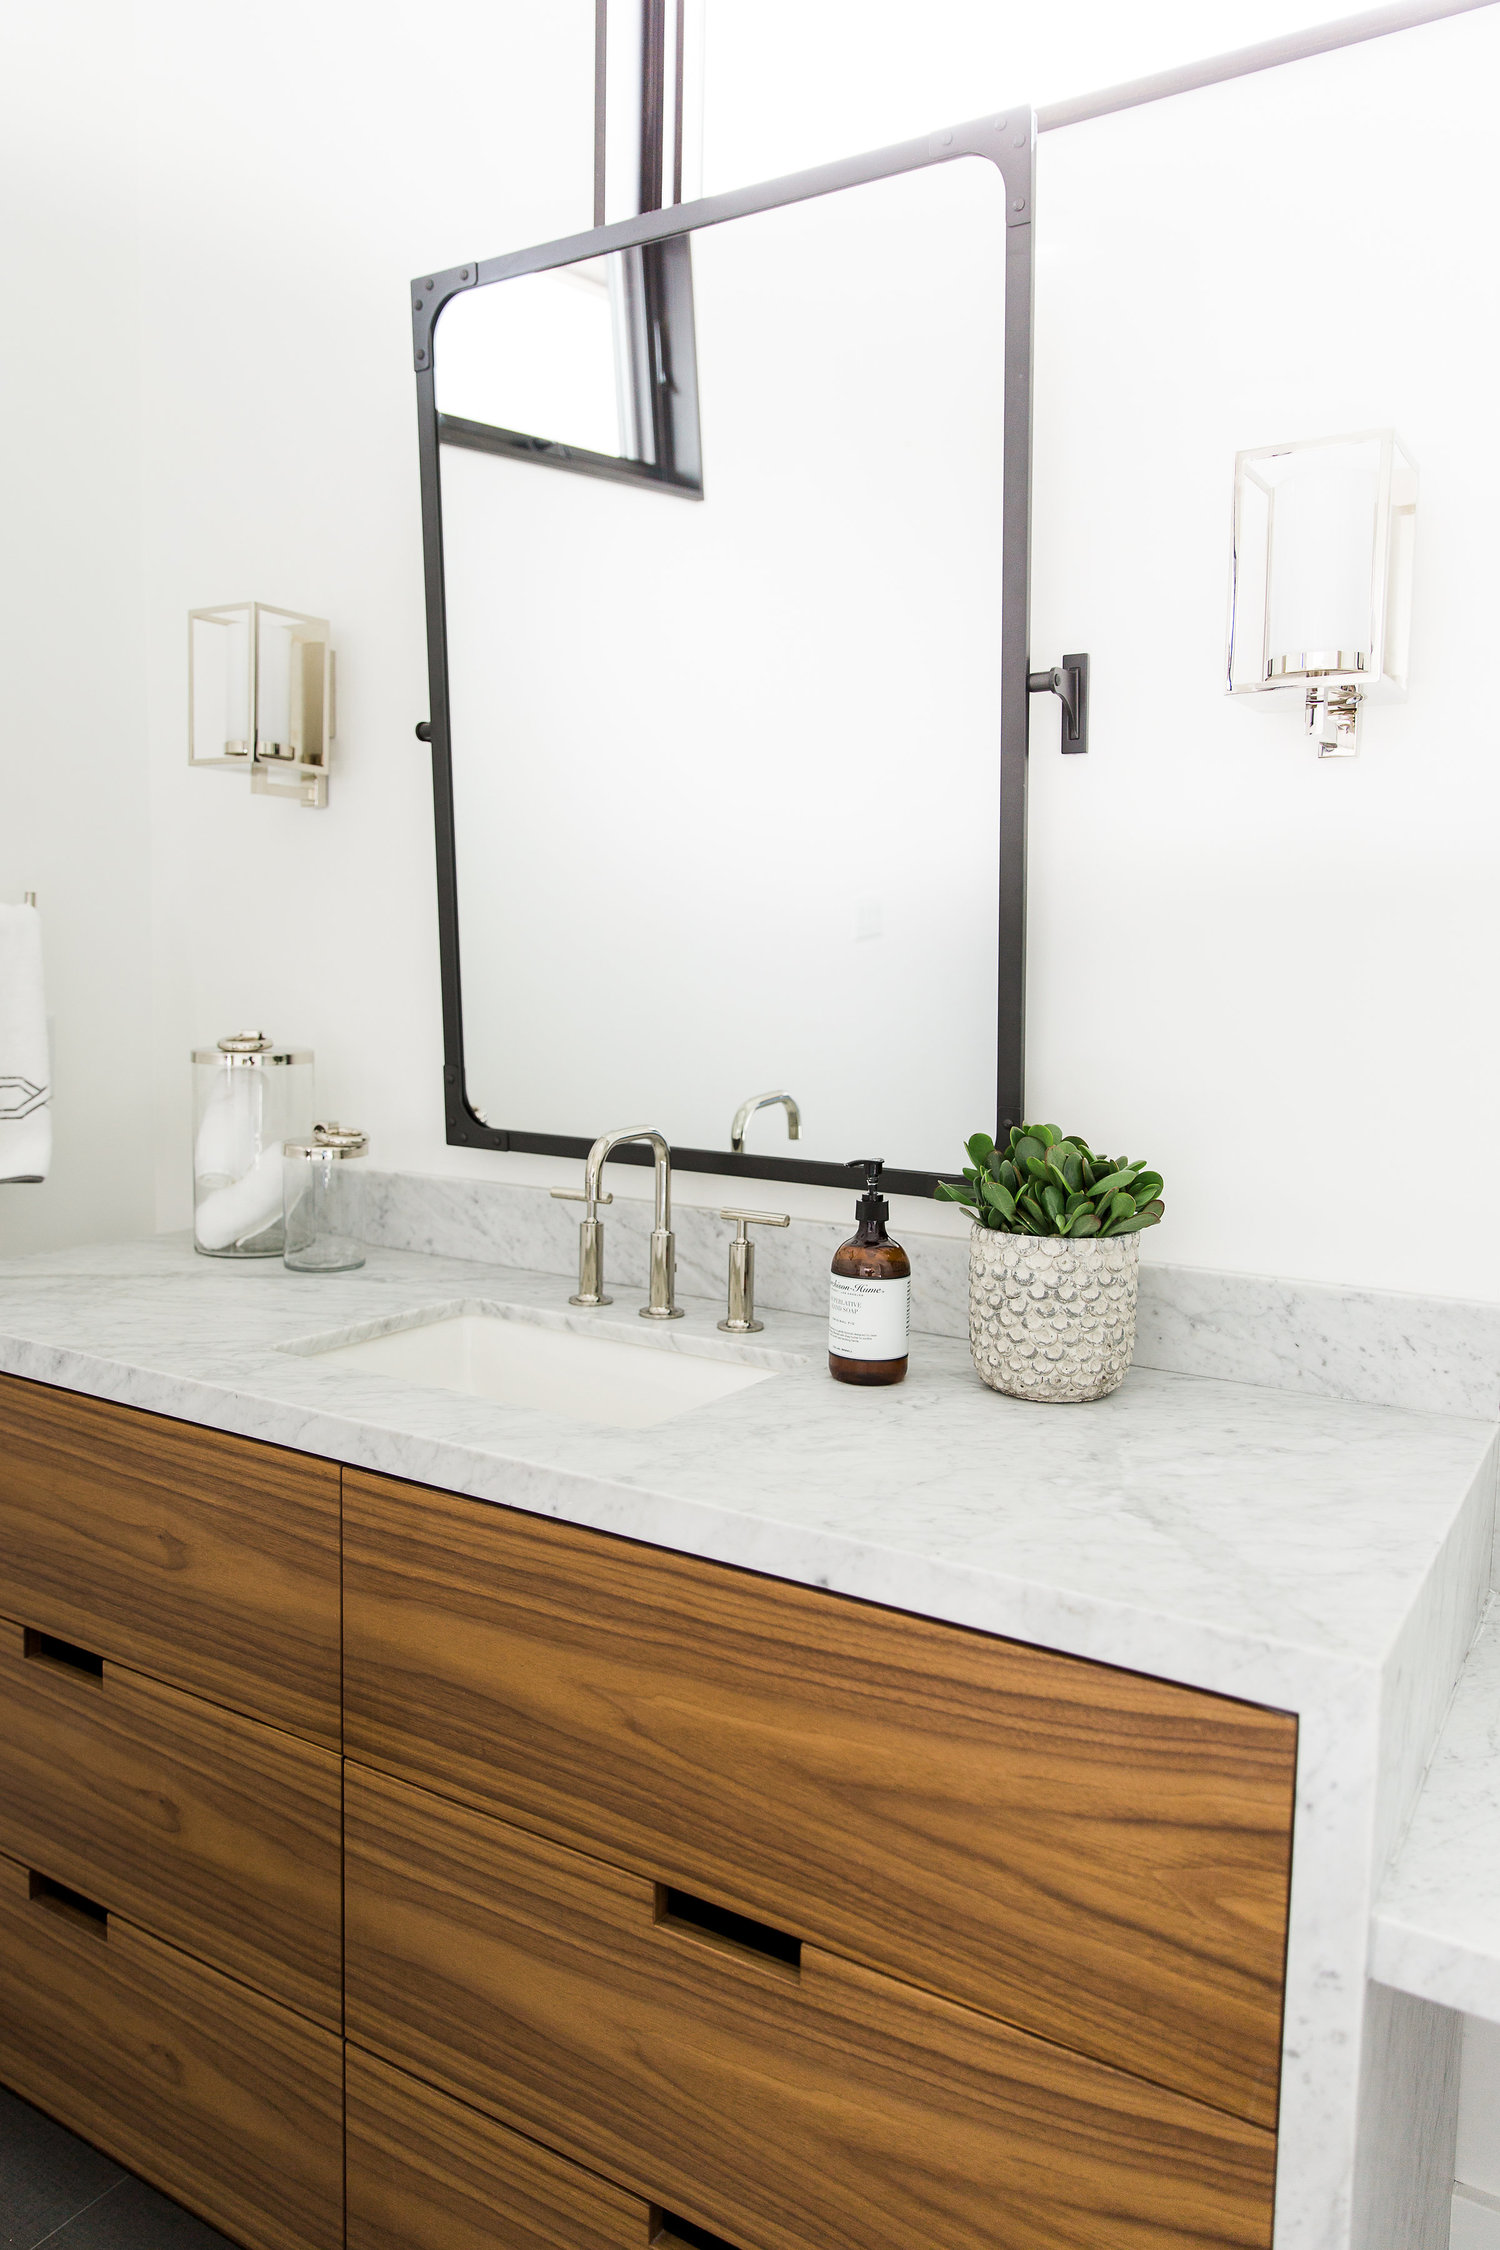 White bathroom vanity with wooden drawers